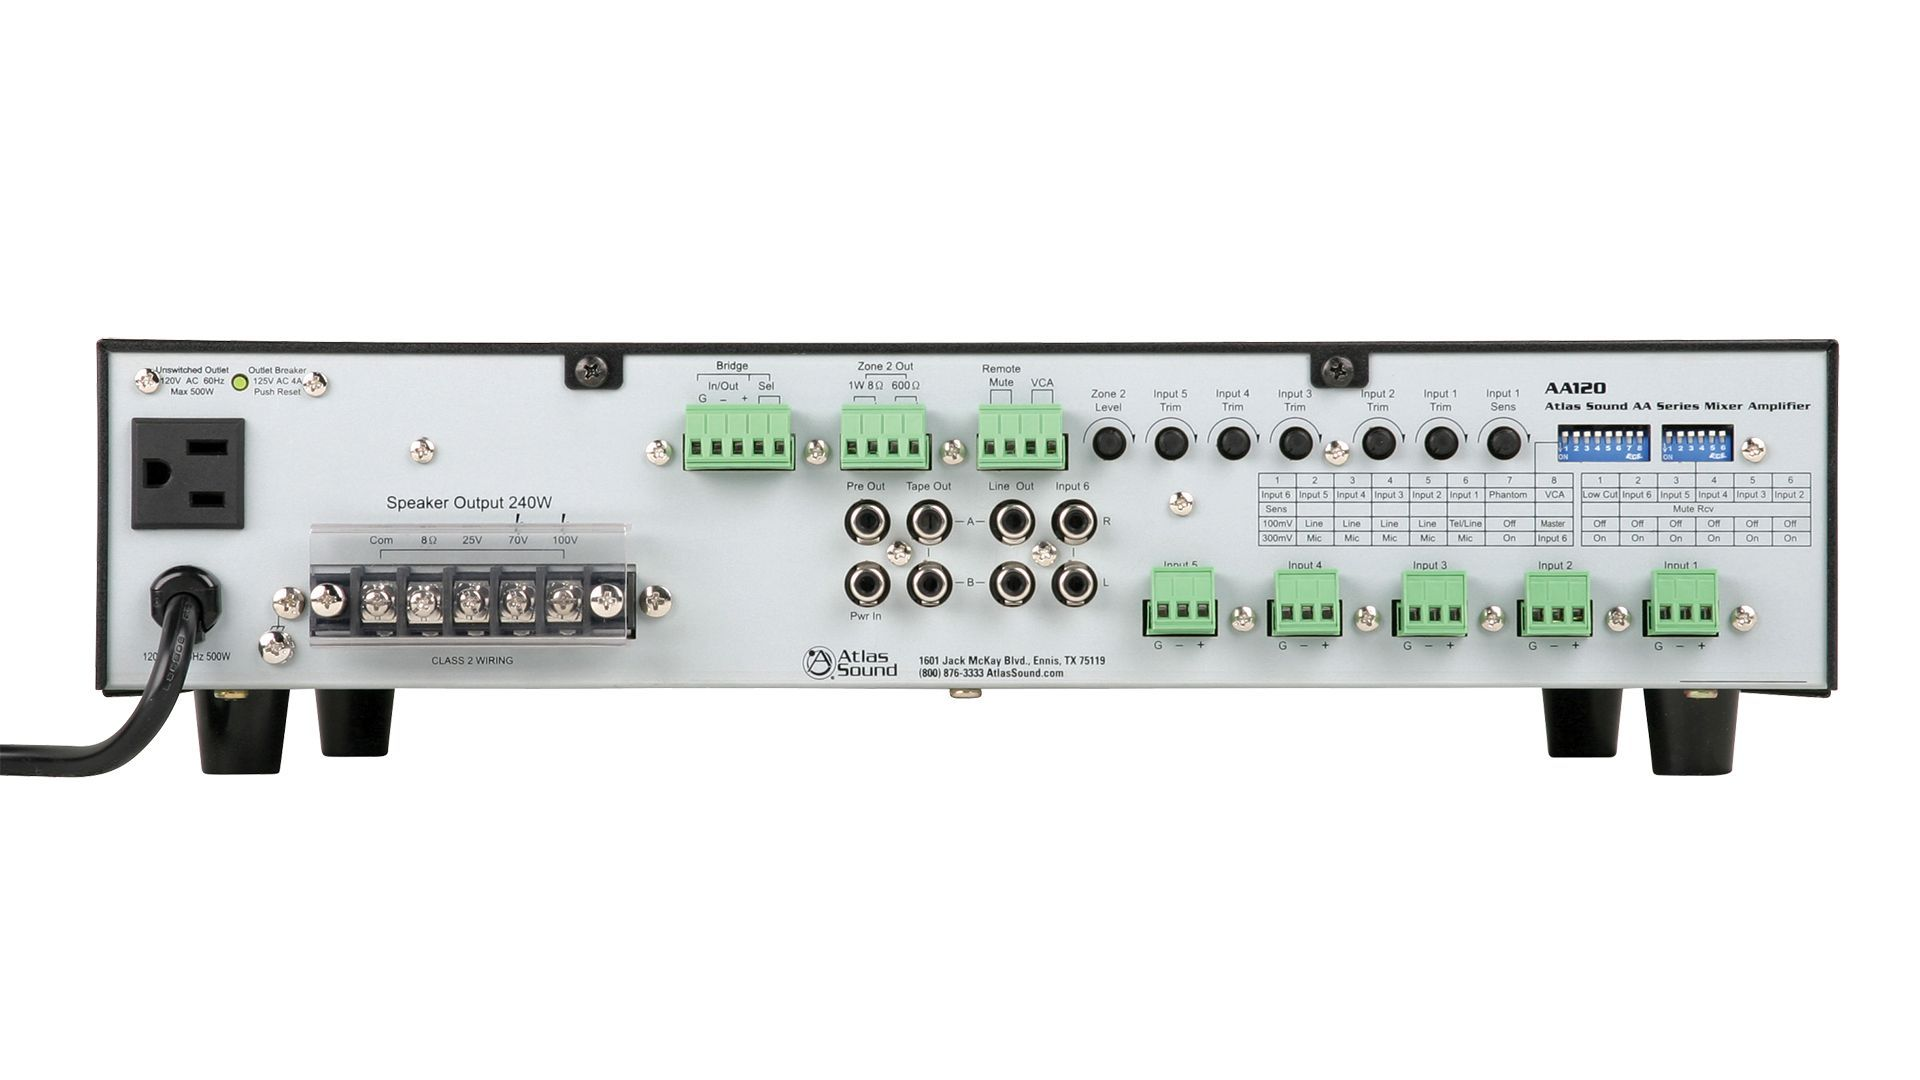 6 Input 120 Watt 25v 70v 100v 8 Mixer Amplifier Atlasied Audio Projects To Control The Speaker Output Relay